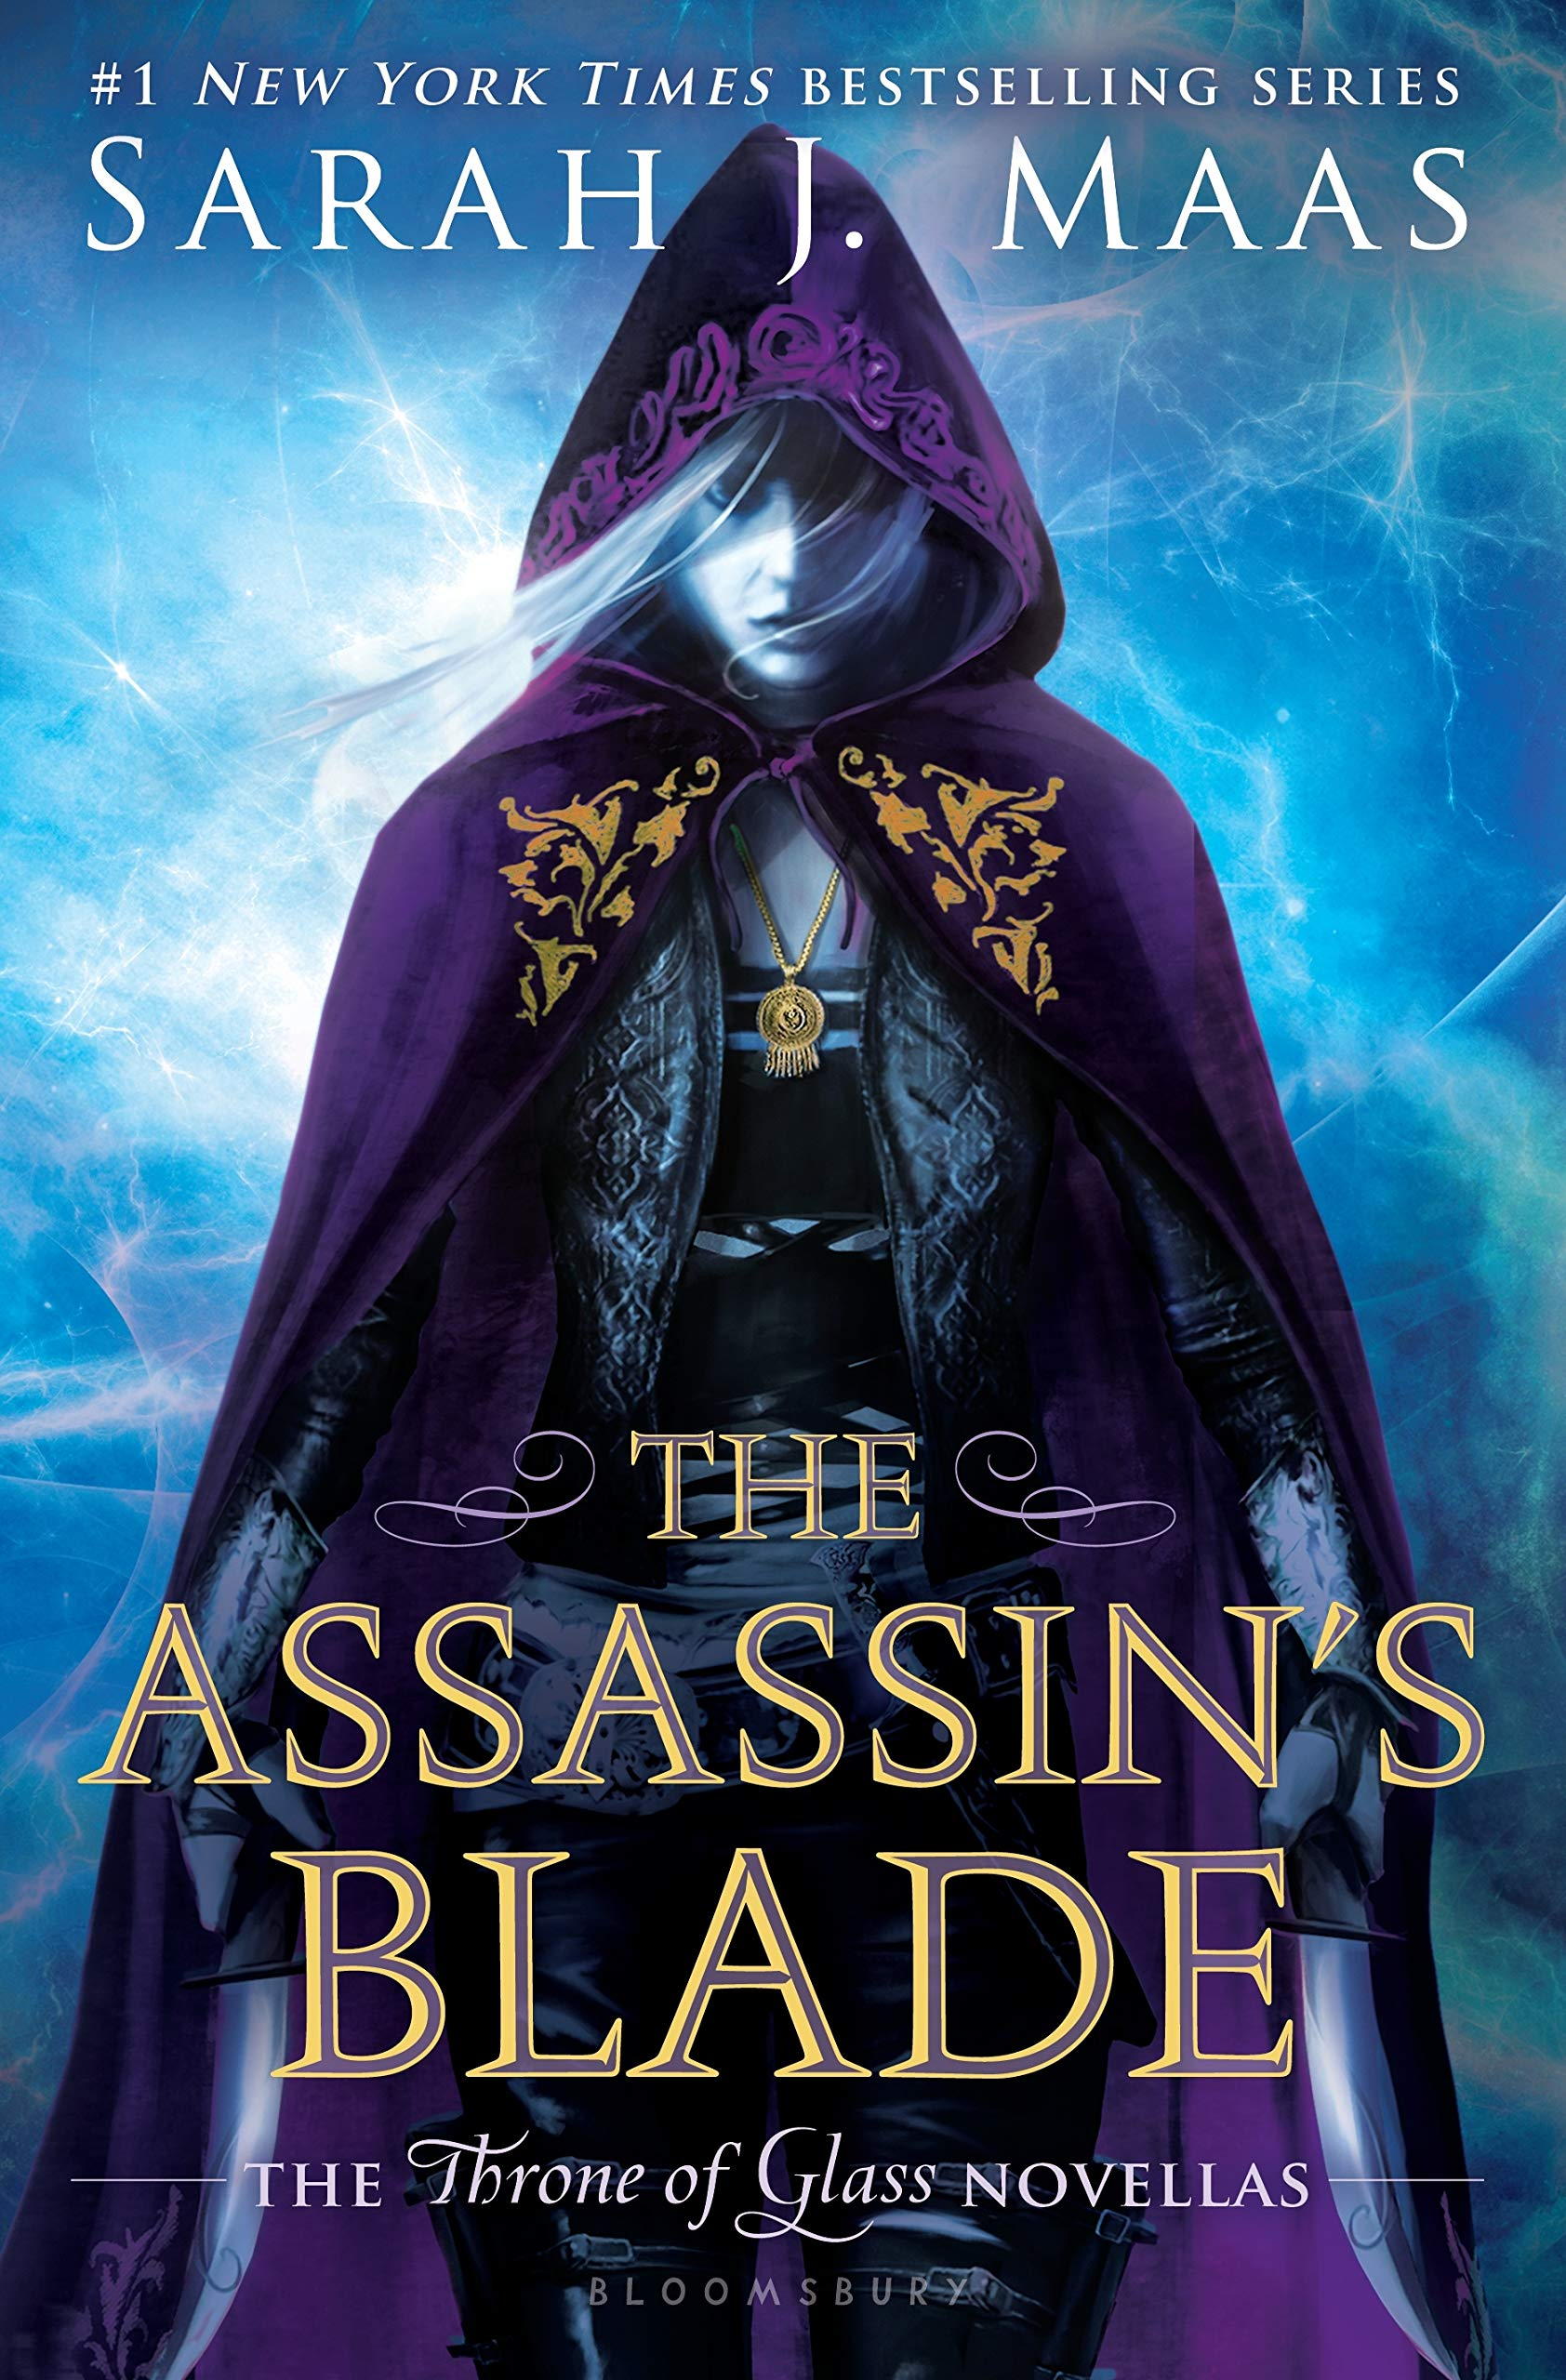 Amazon.com: The Assassin's Blade: The Throne of Glass Novellas ...